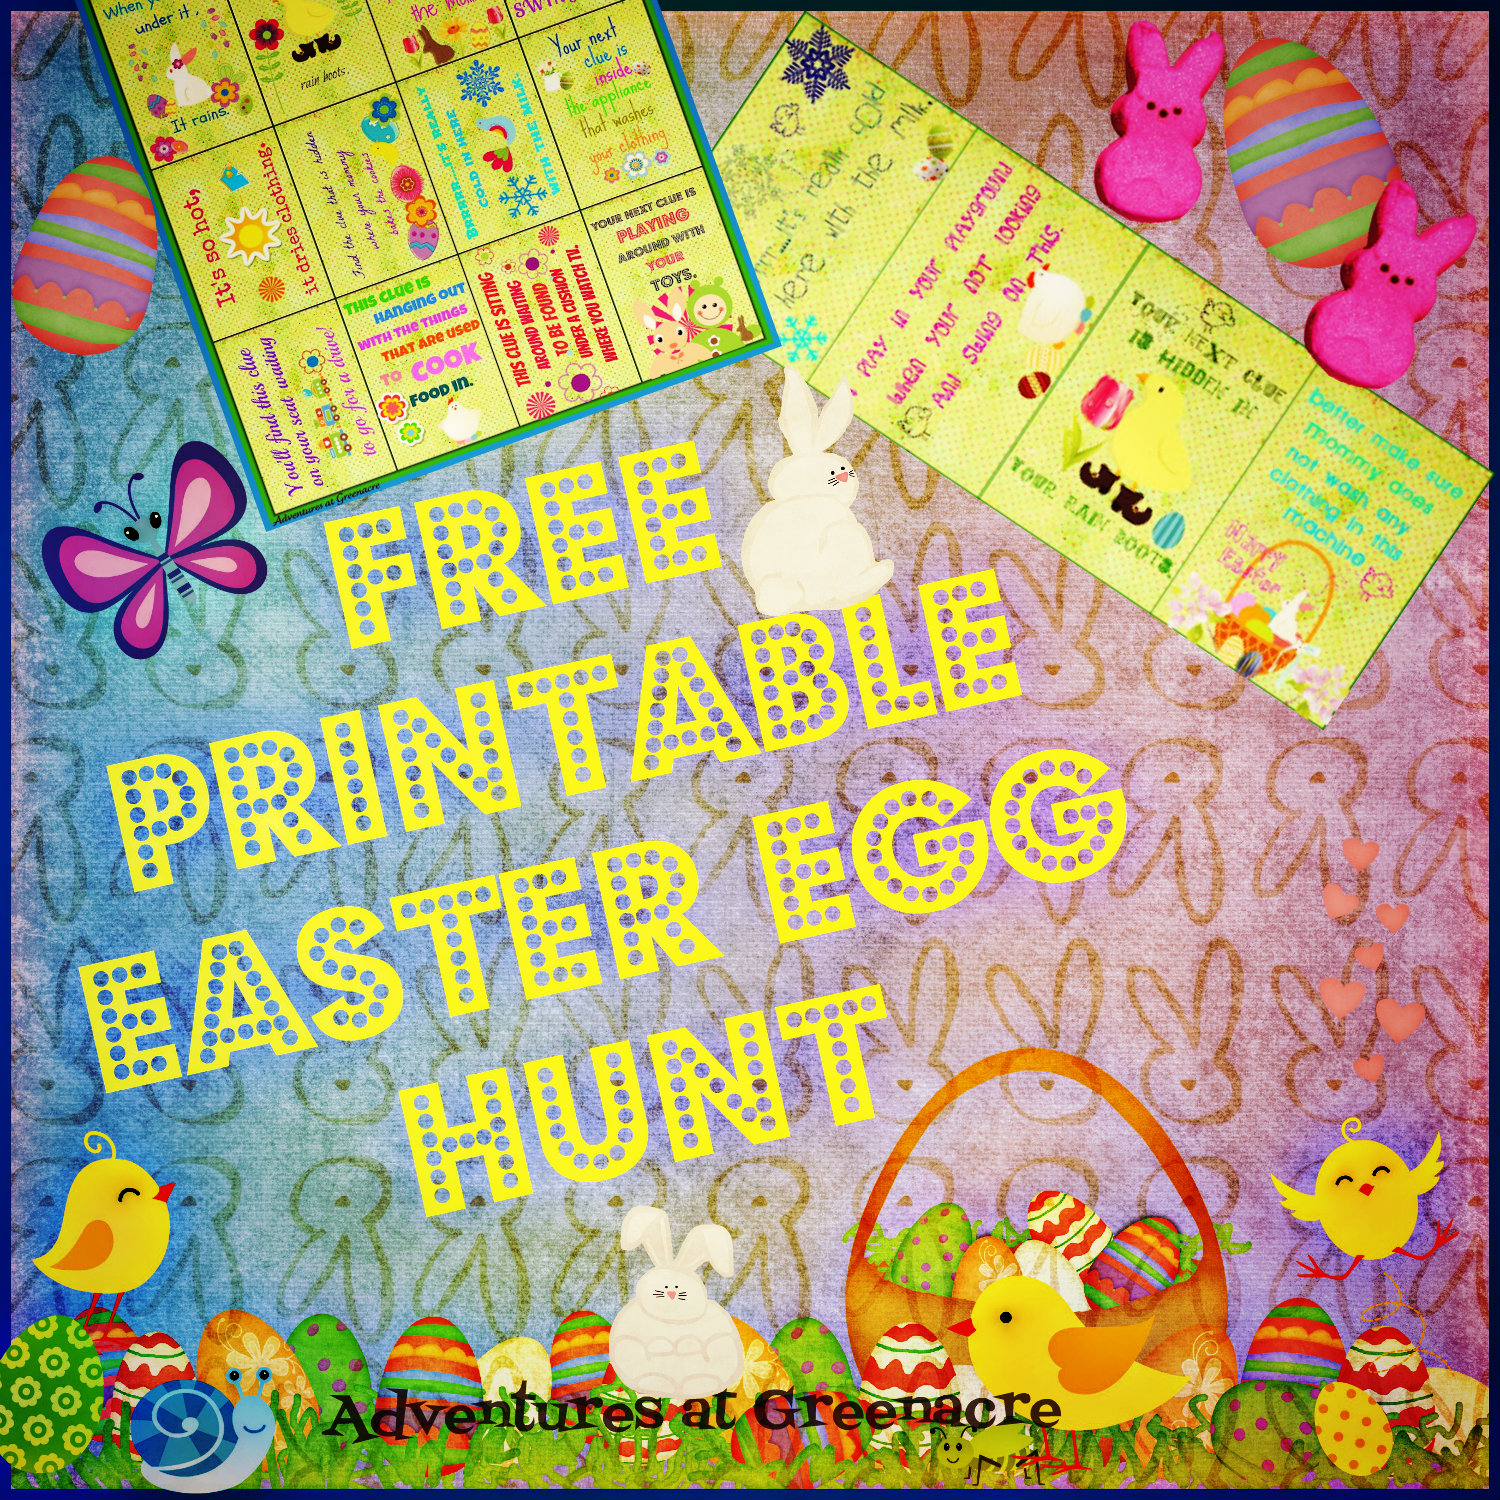 Adventures at Greenacre: Free Easter egg hunt clues printable